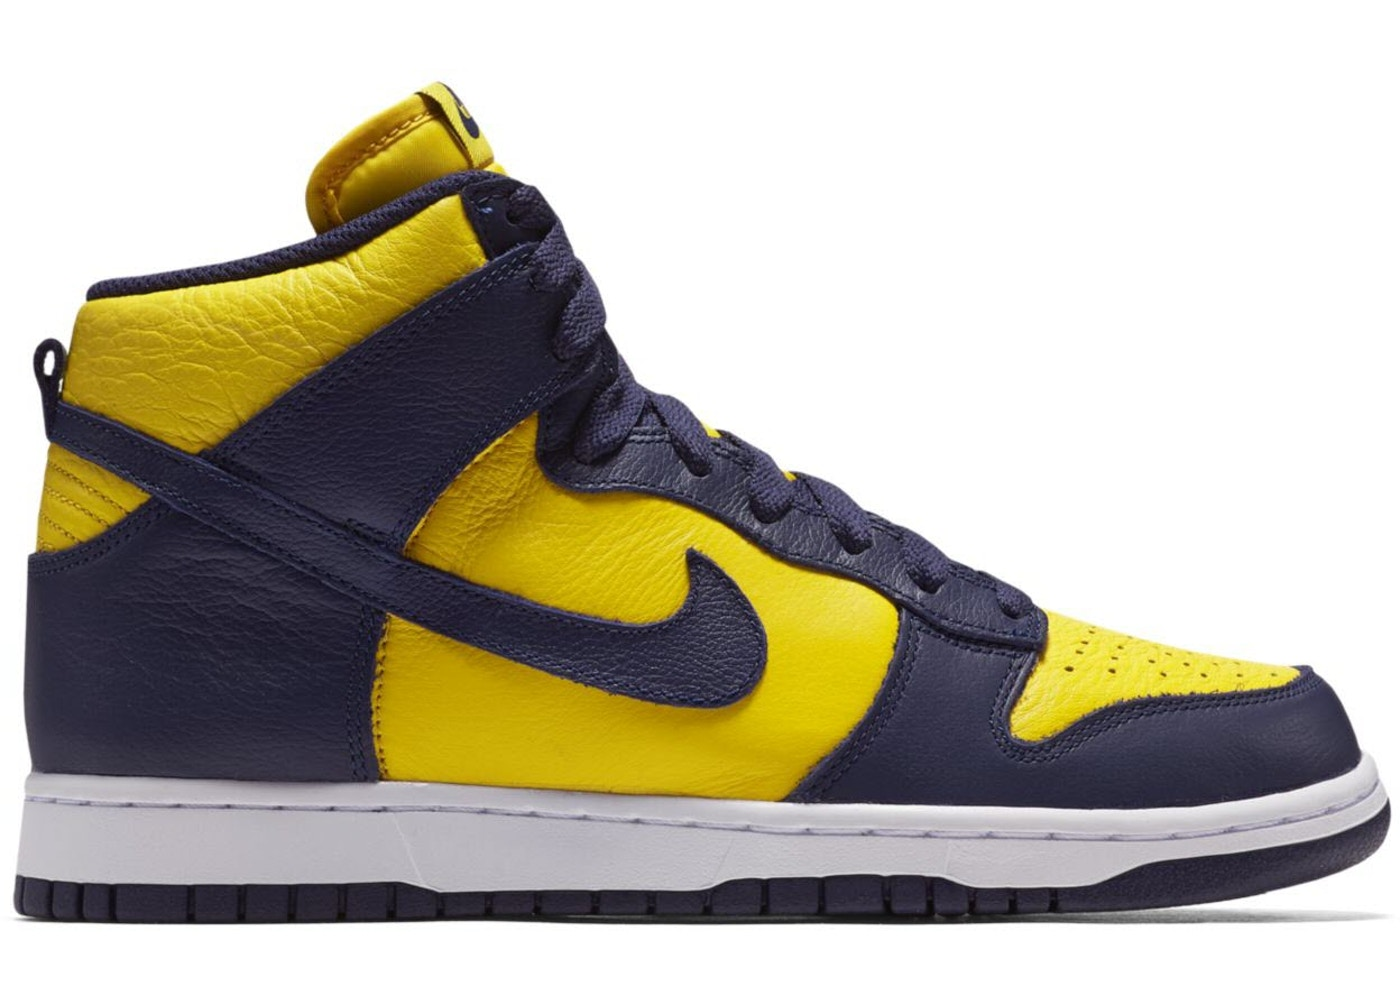 timeless design 72f03 4bddc Nike Dunk High Michigan - 850477-700